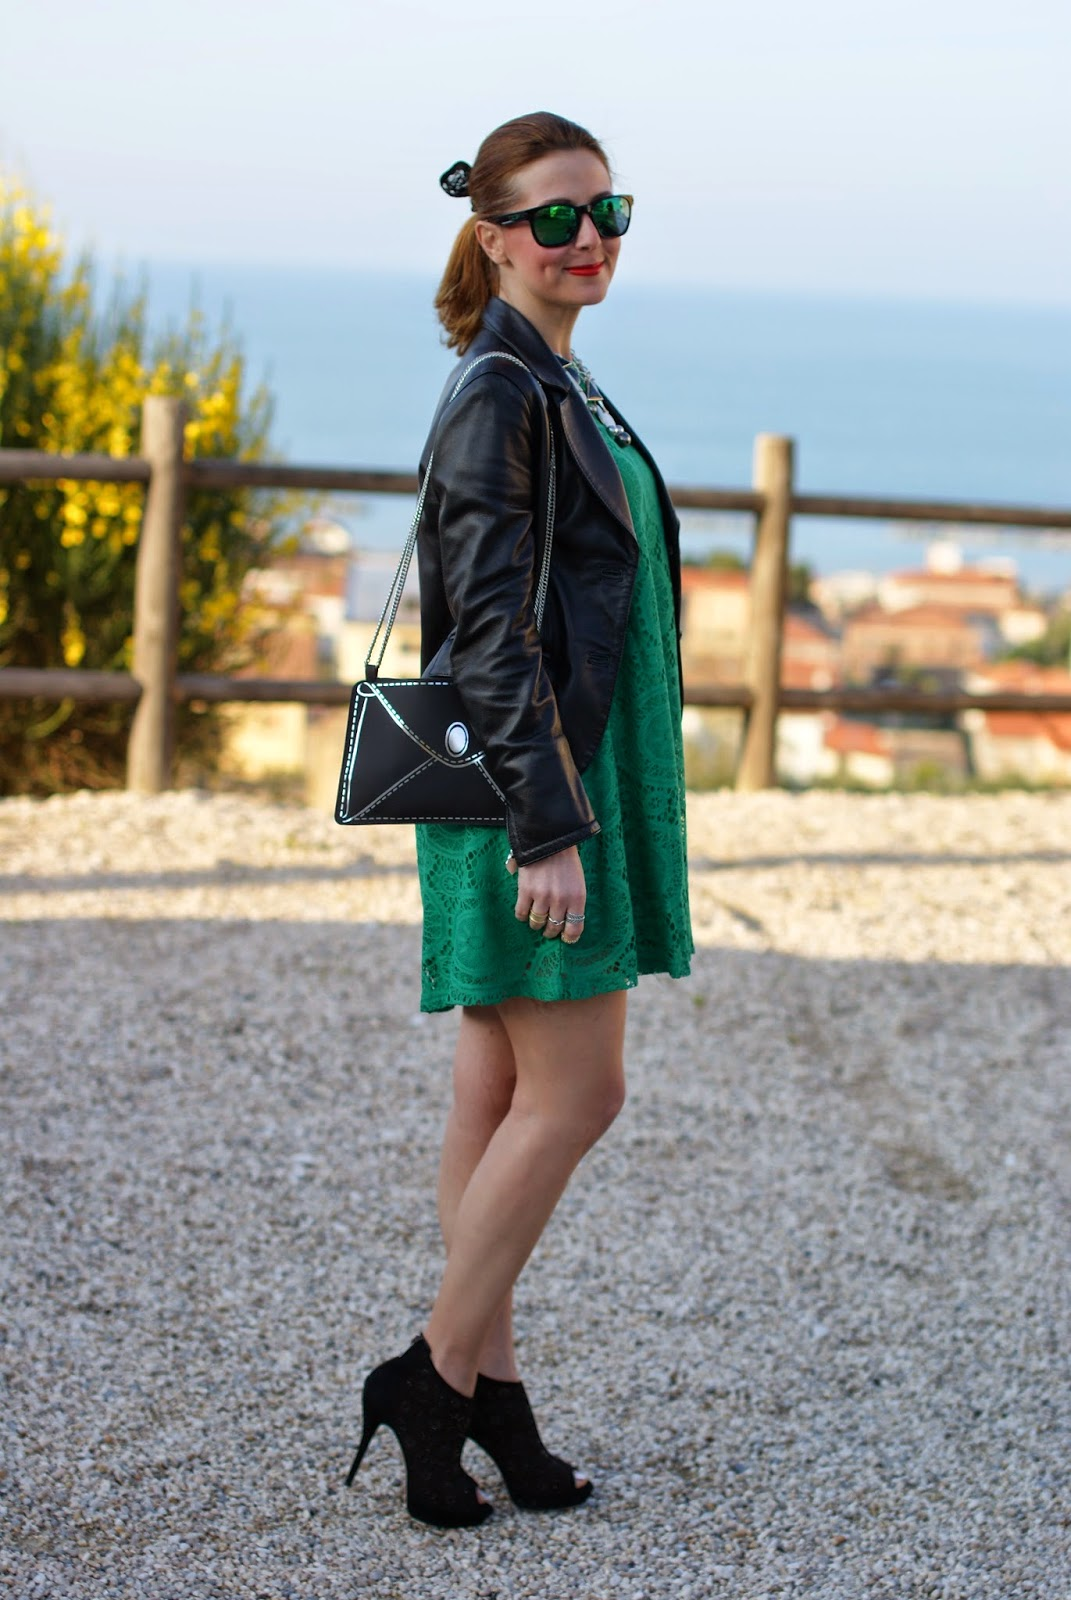 Vitti Ferria Contin jewelry, Today I'm me evening bag, Poletto shoes, Sheinside green dress, Fashion and Cookies, fashion blogger